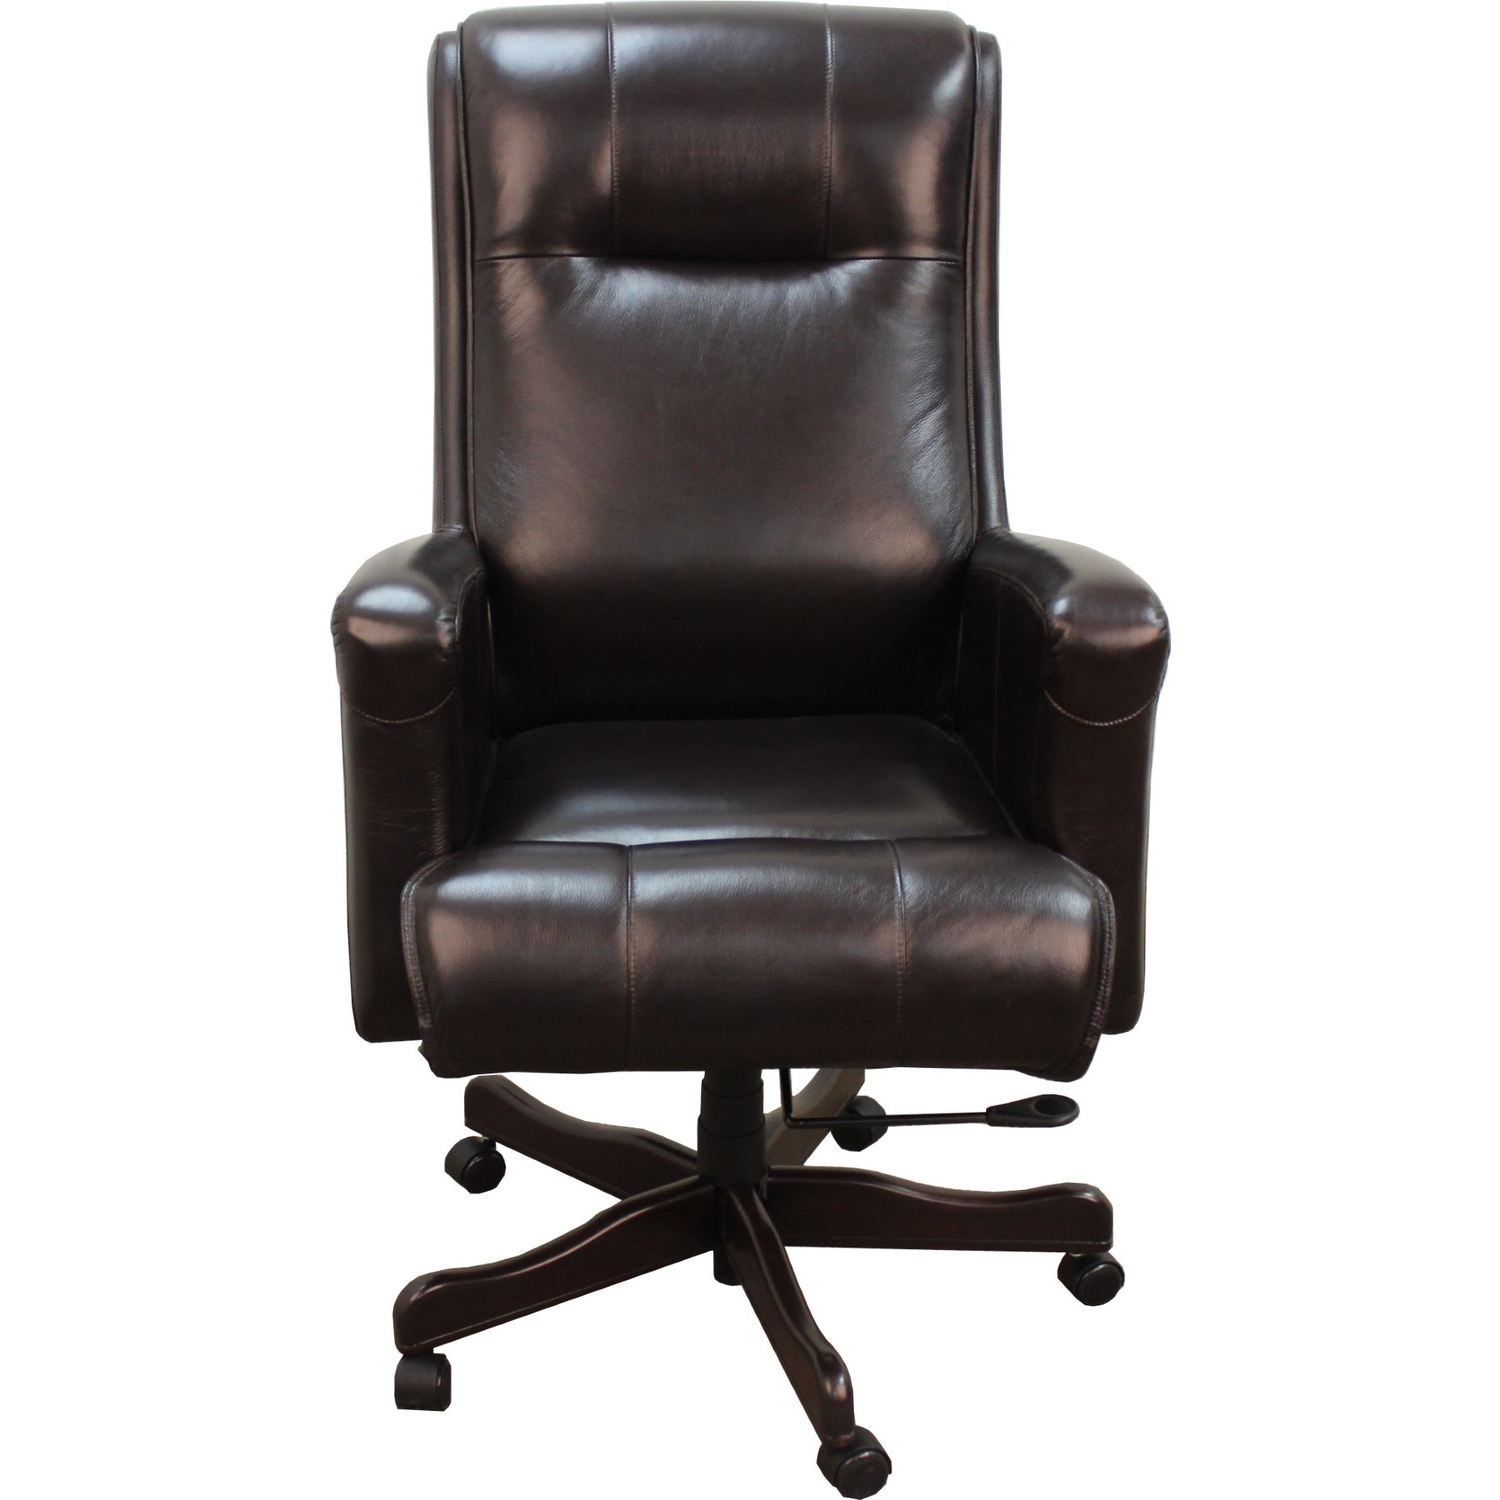 High End Executive Office Chairs Intended For Well Liked Chair : La Z Boy Executive Leather Office Chair Voyager 92D (View 6 of 20)